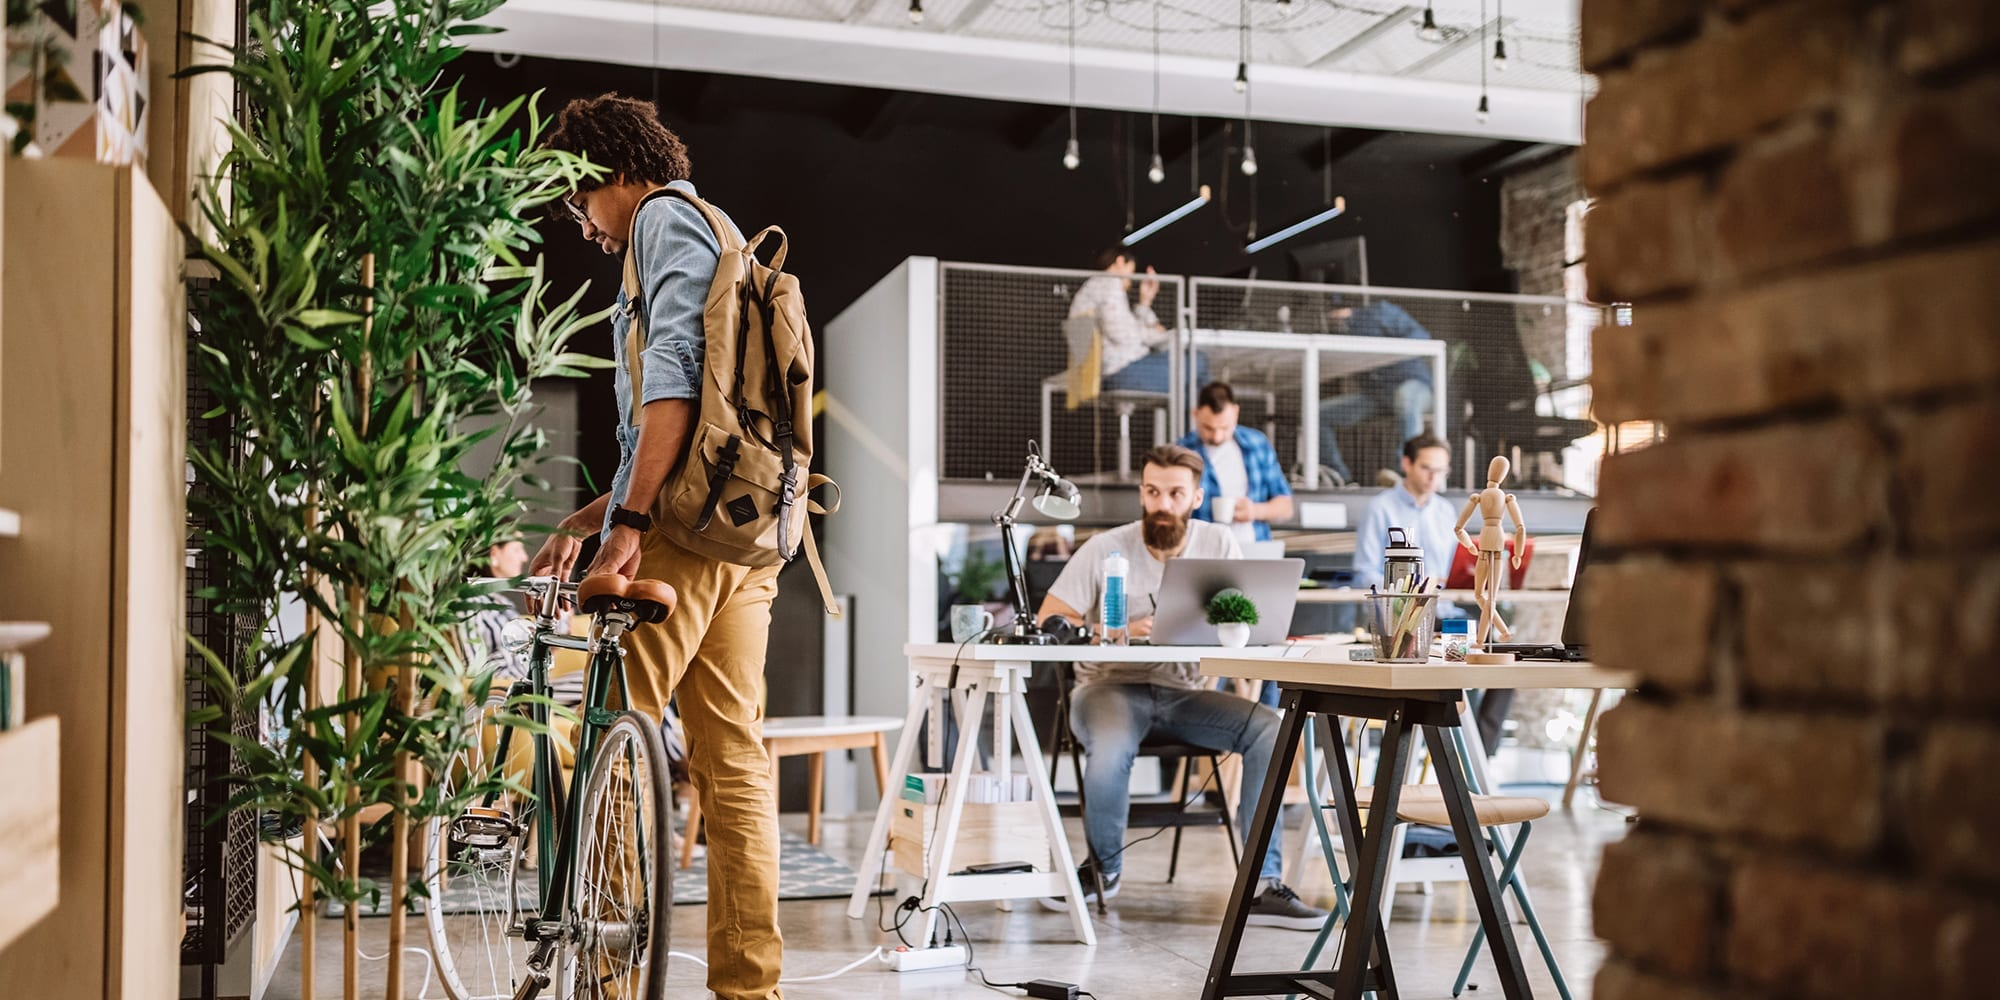 13 growing startups with job openings this October